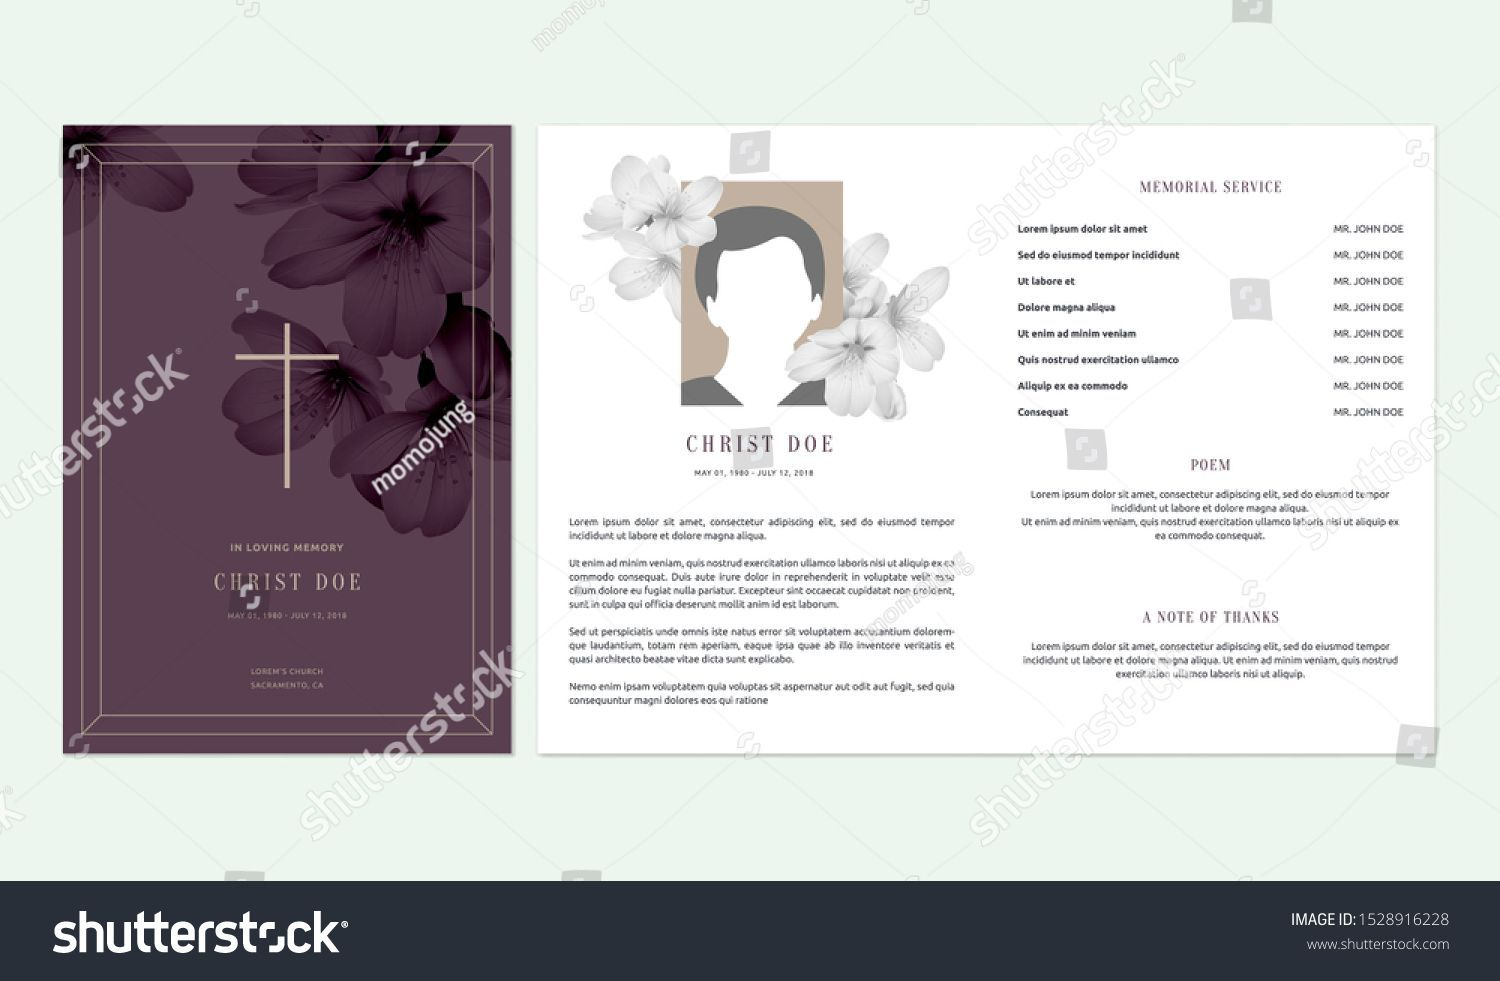 003 Impressive Funeral Invitation Template Free Picture  Memorial Service Card ReceptionFull